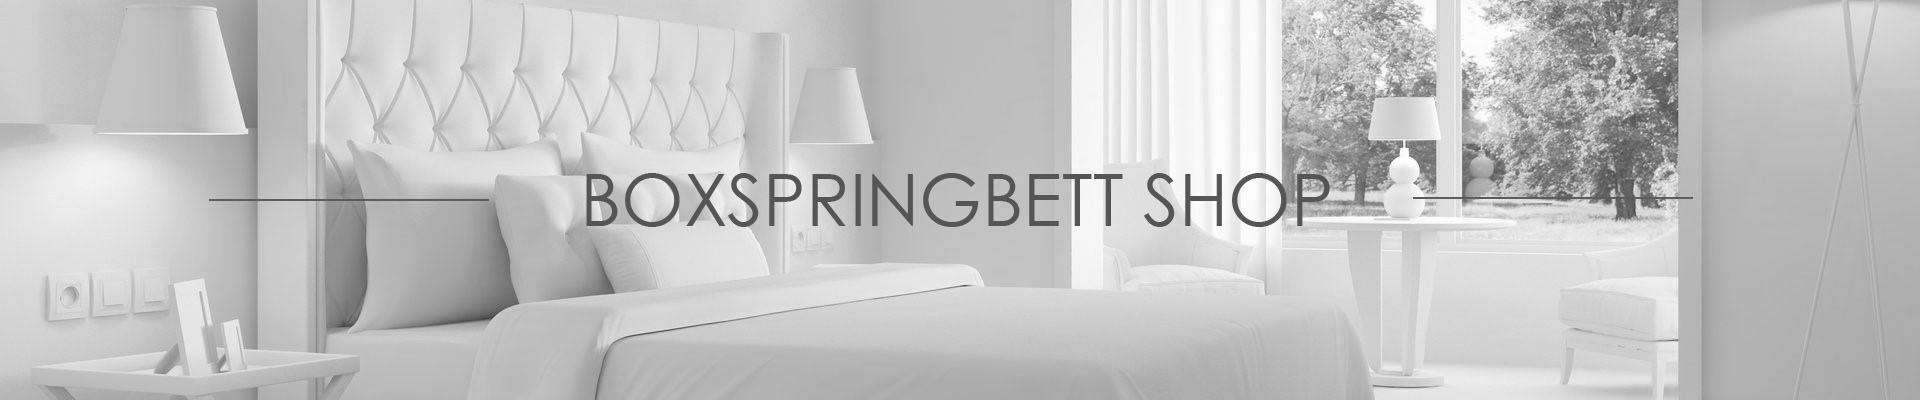 Boxspringbett Shop